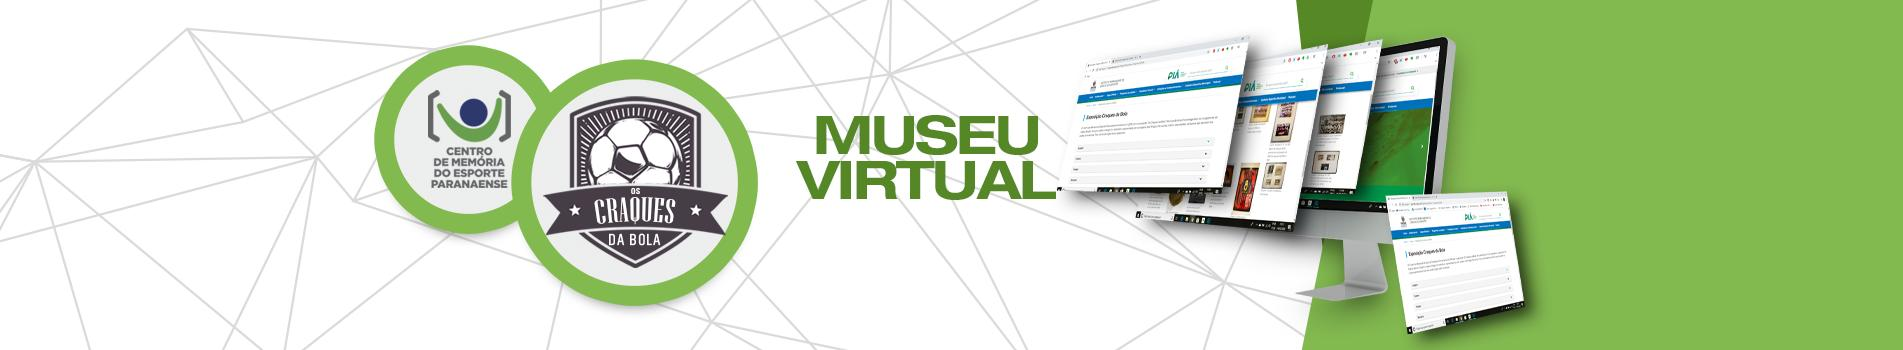 MUSEU VIRTUAL - Banner superior